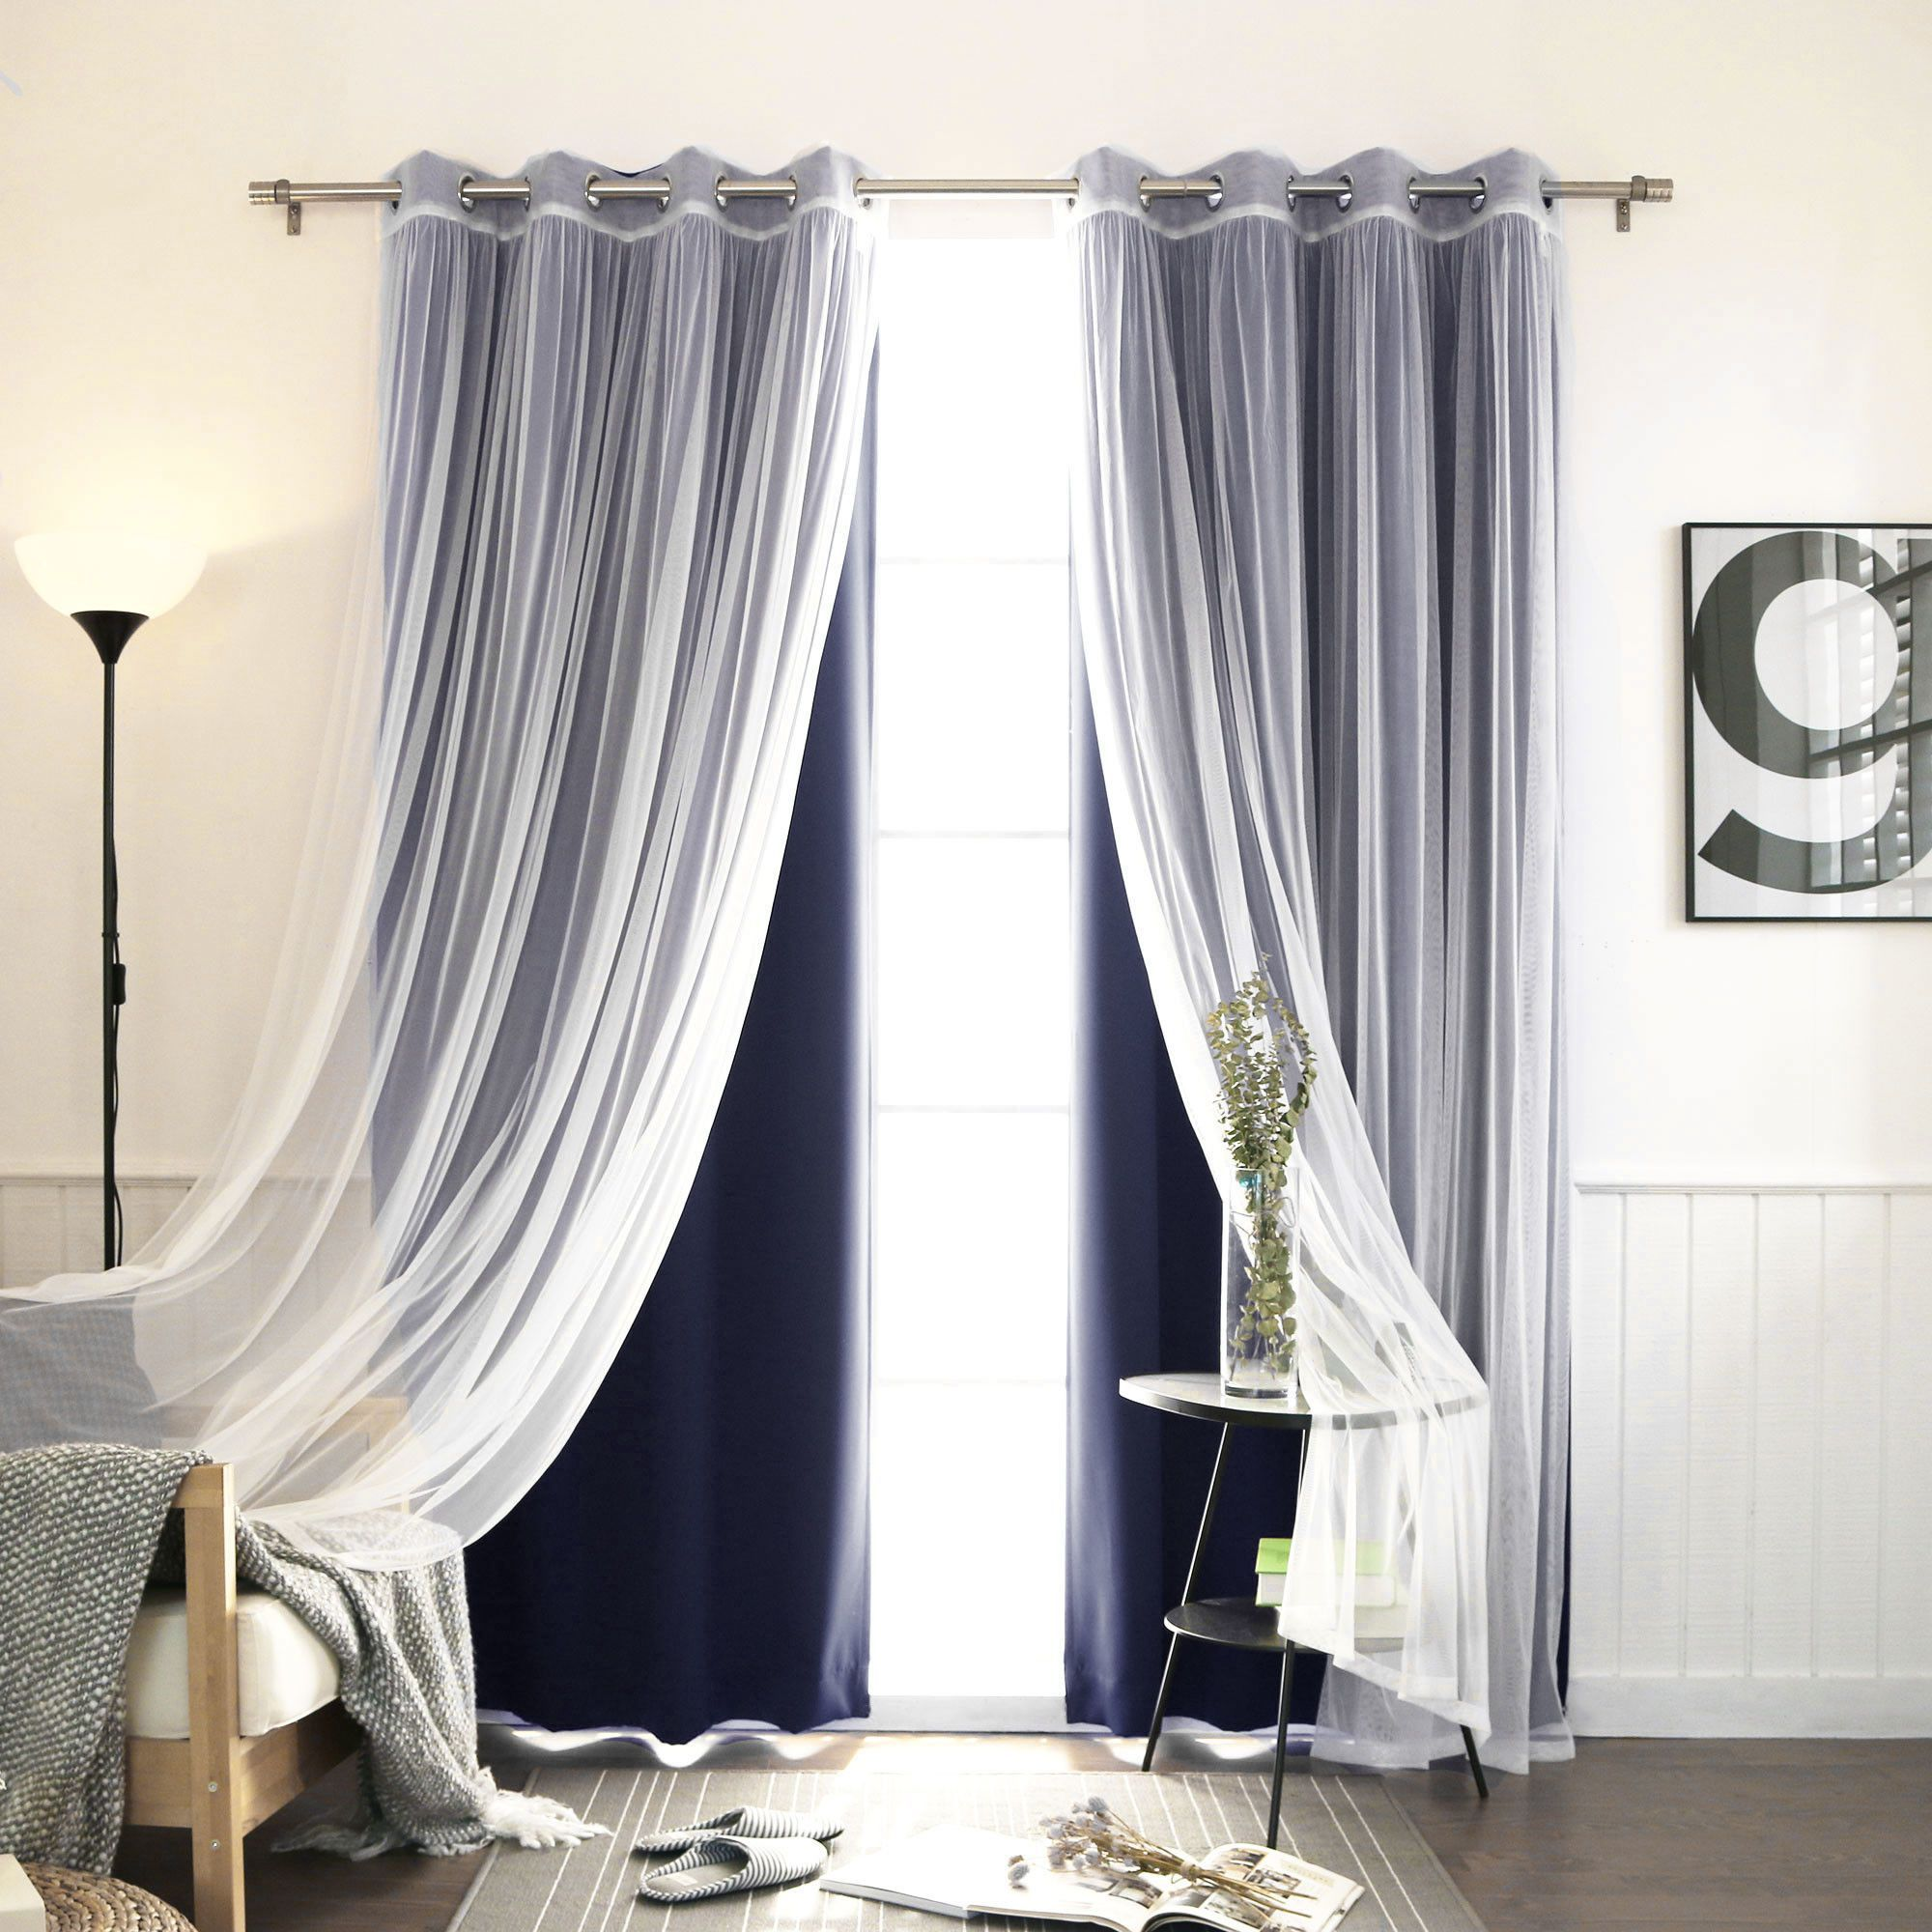 Features Set Includes 2 Blackout Curtain Panels And 2